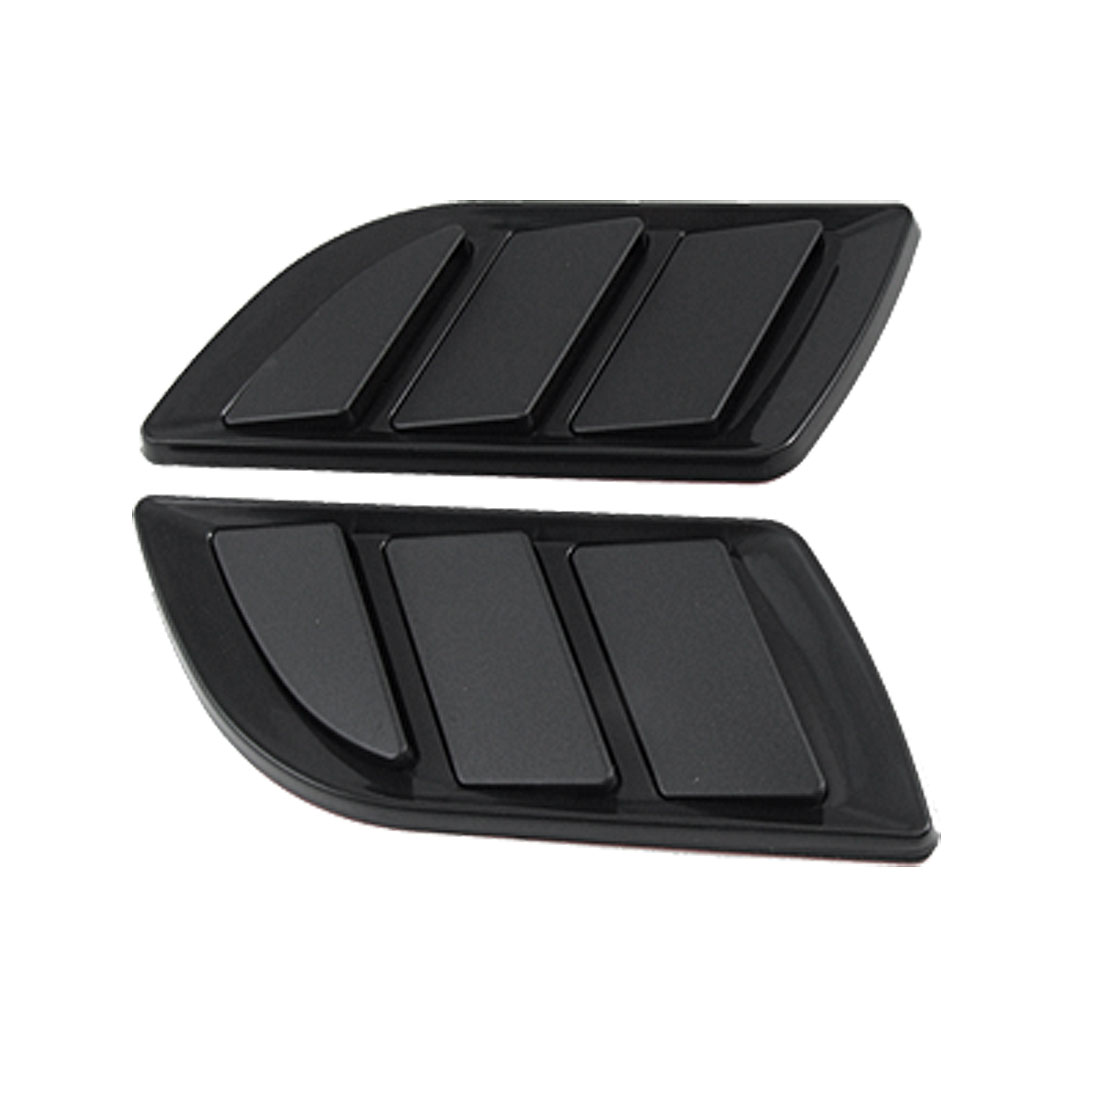 2 Pcs Black Air Flow Fender Car Side Vent Euro Duct